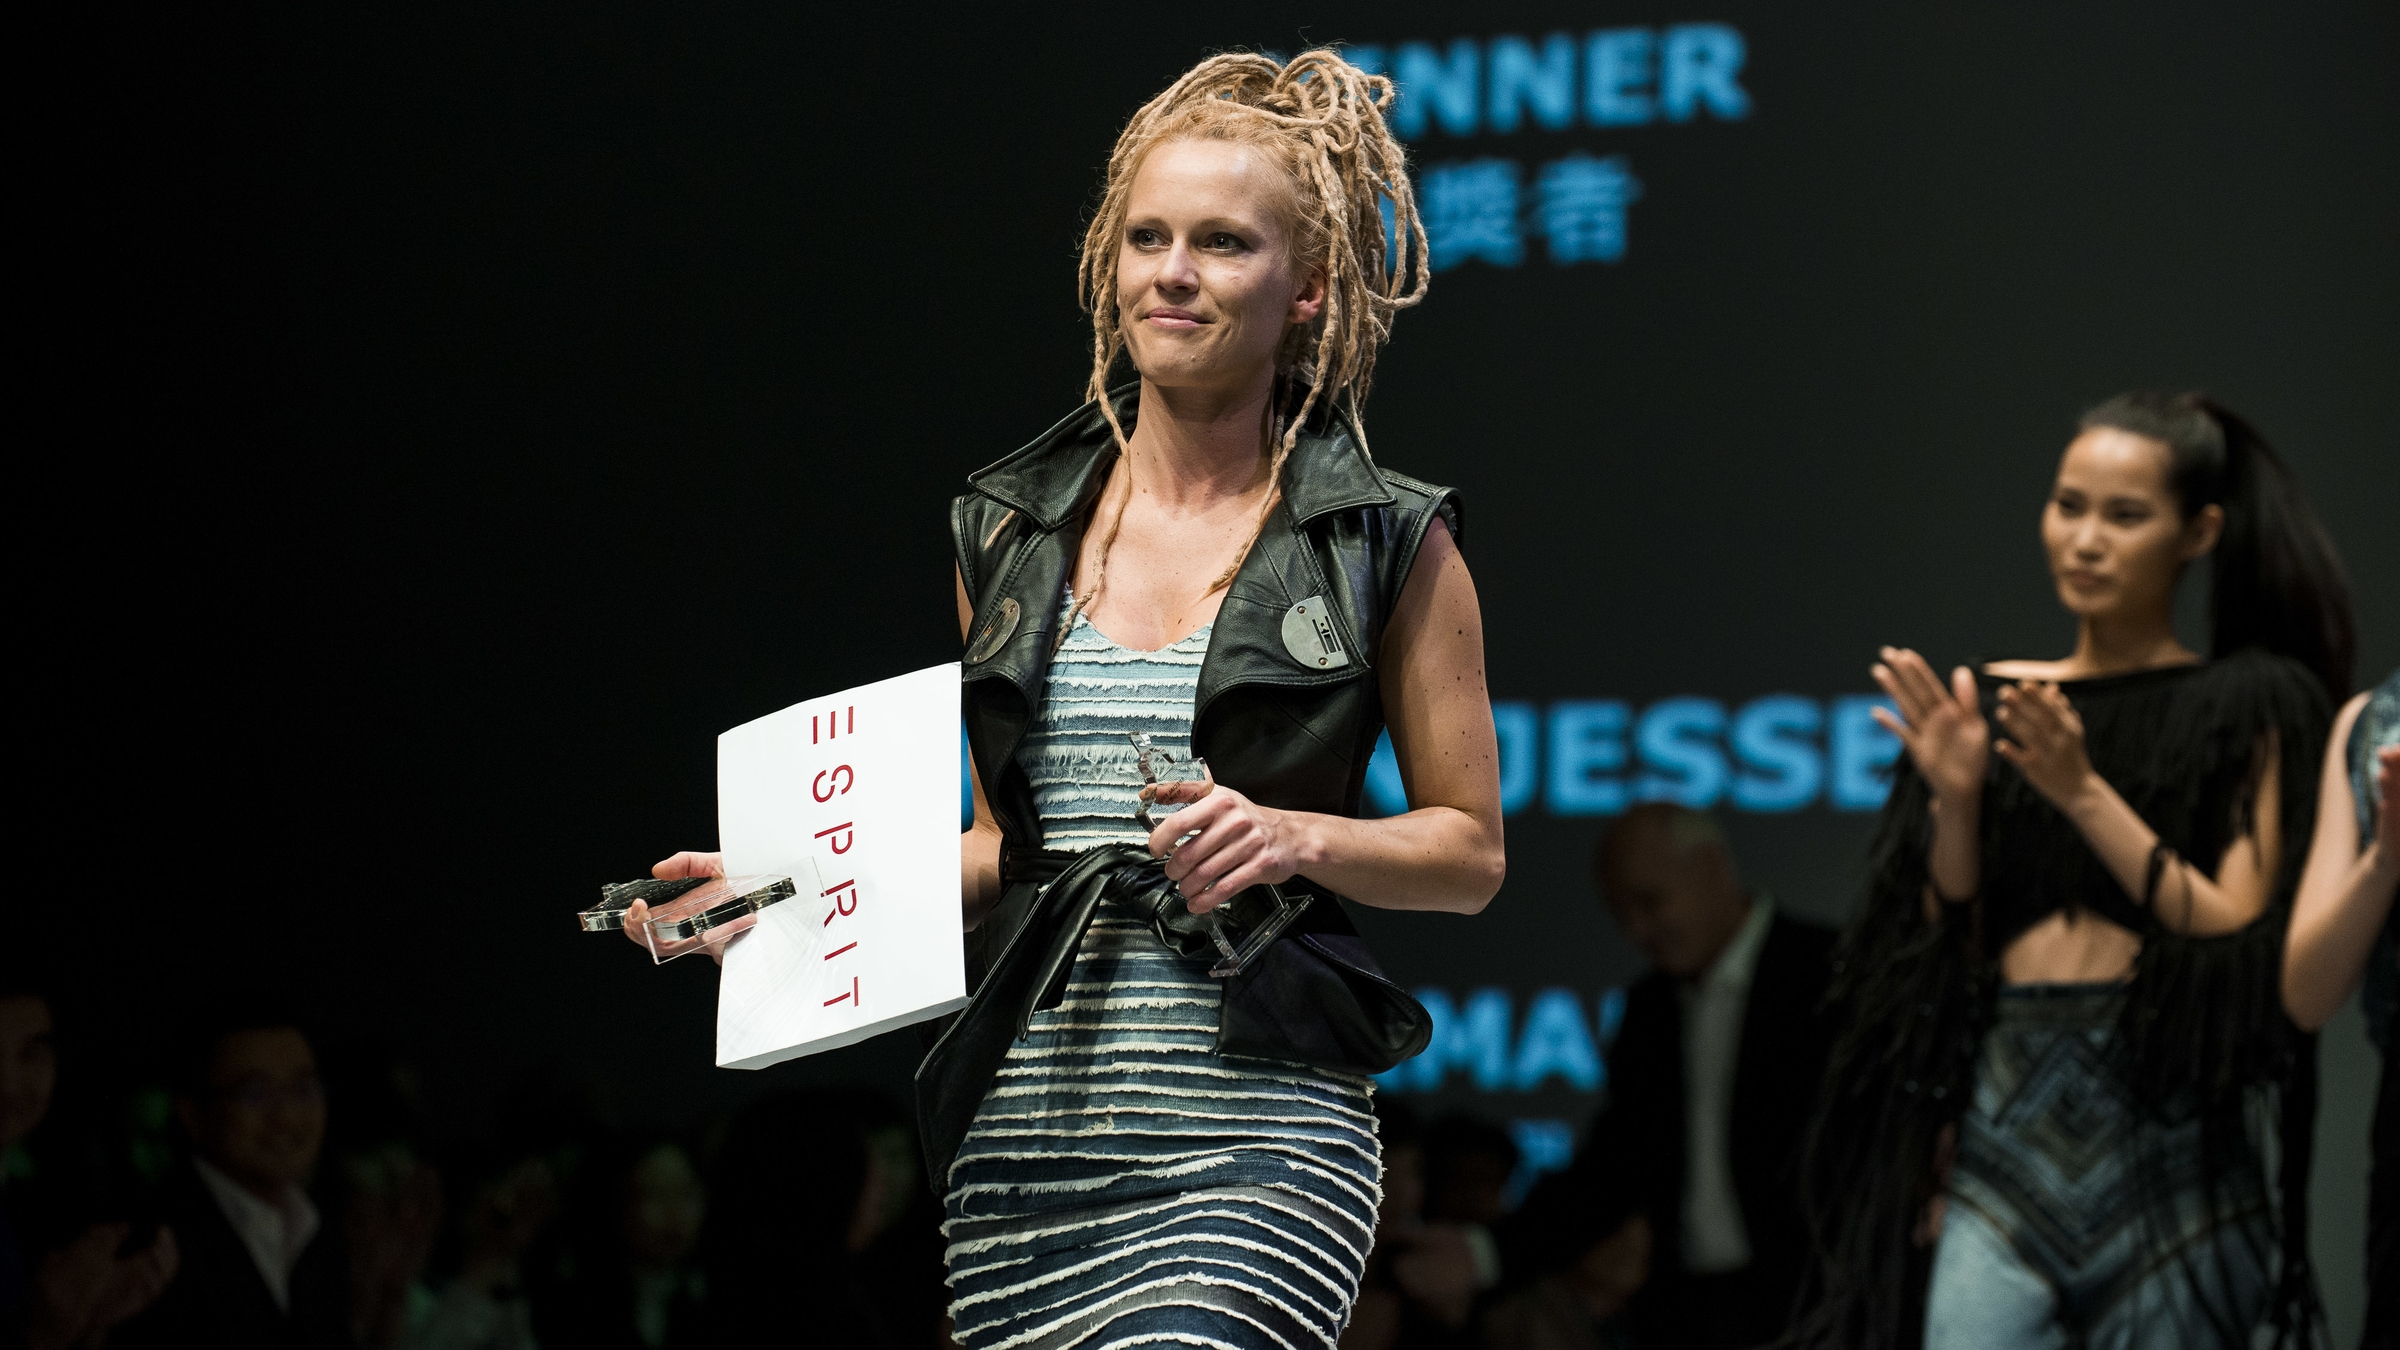 1st Prize_ECDA2013 in partnership with Esprit Winner_Karen Jessen_photo by Victor Fraile_Studio East.jpg